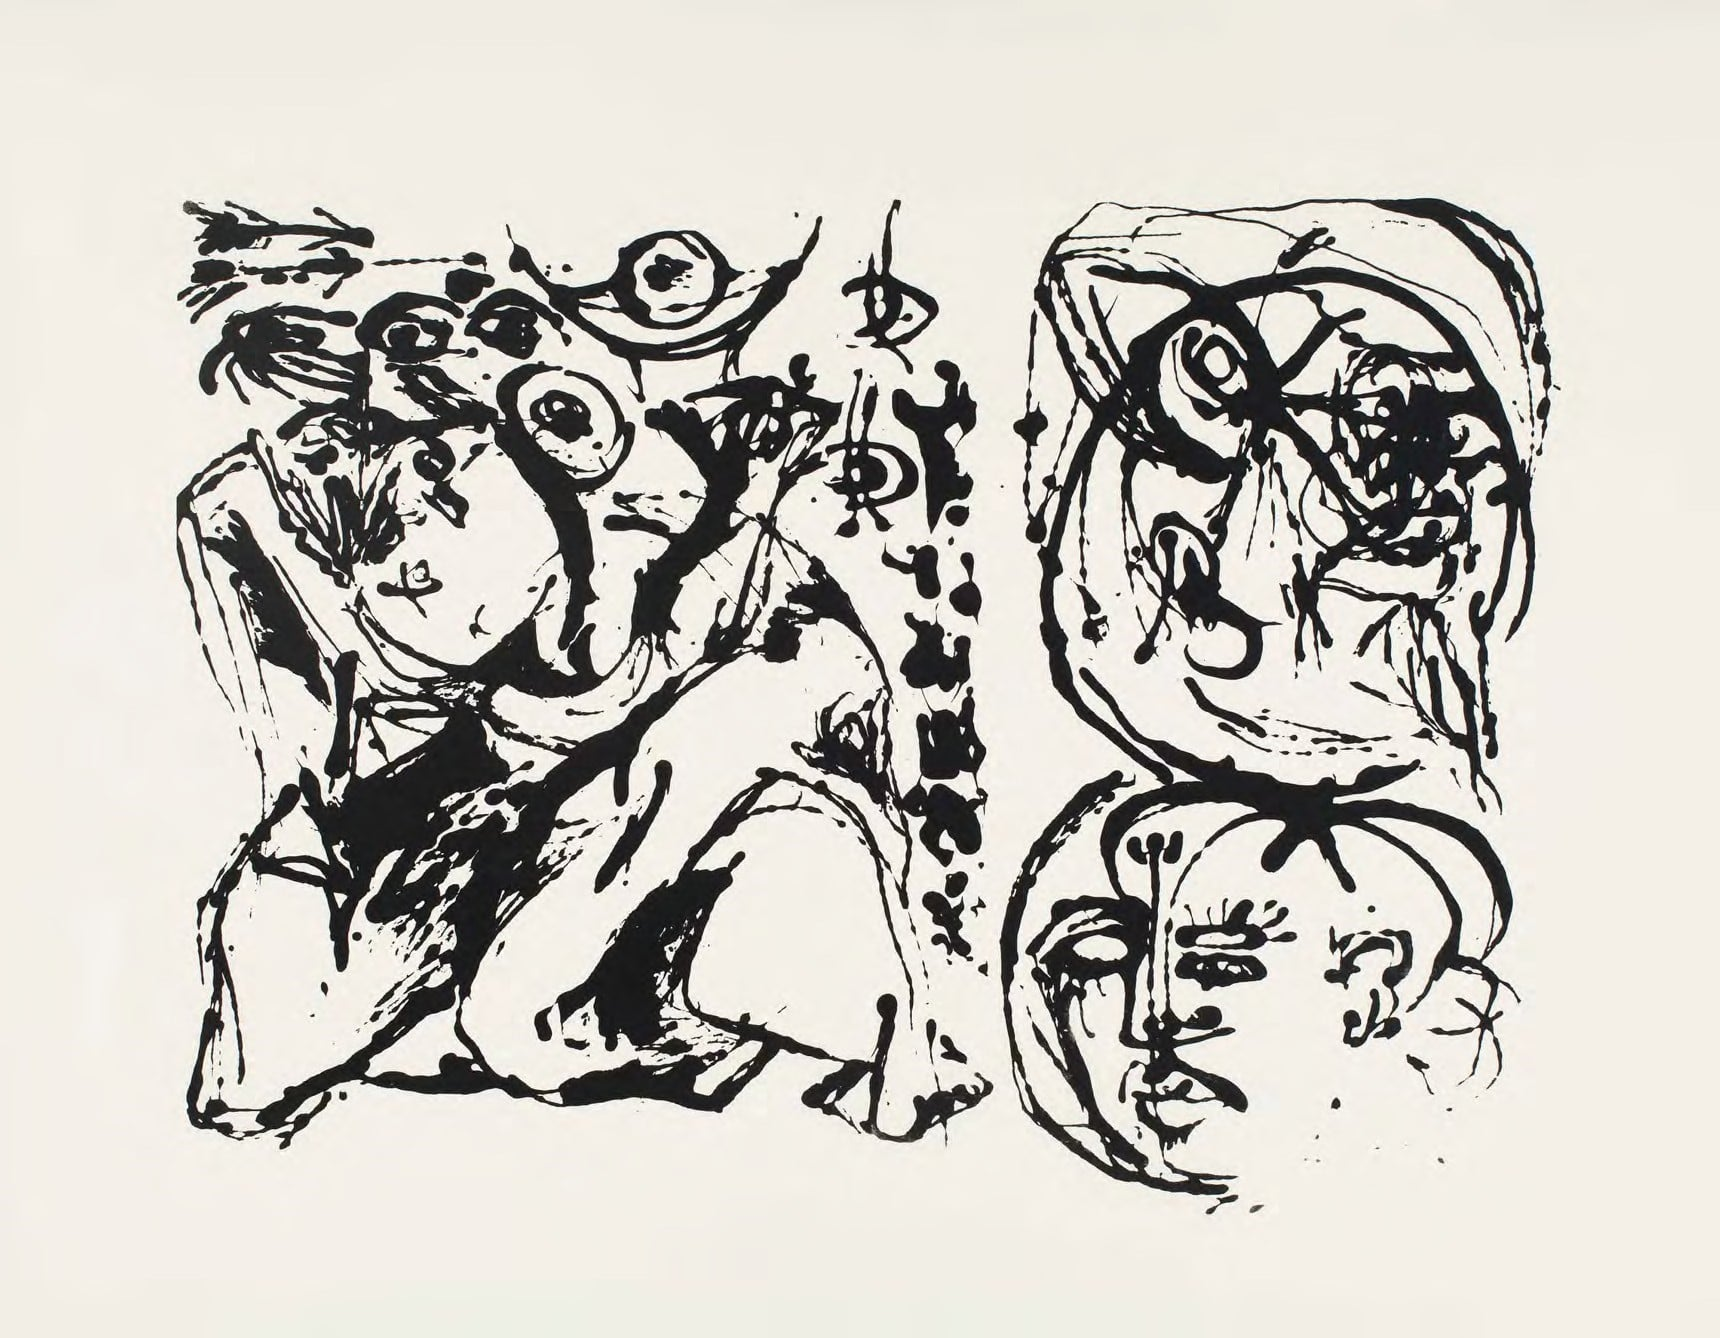 Jackson Pollock: Experimental Work on Paper